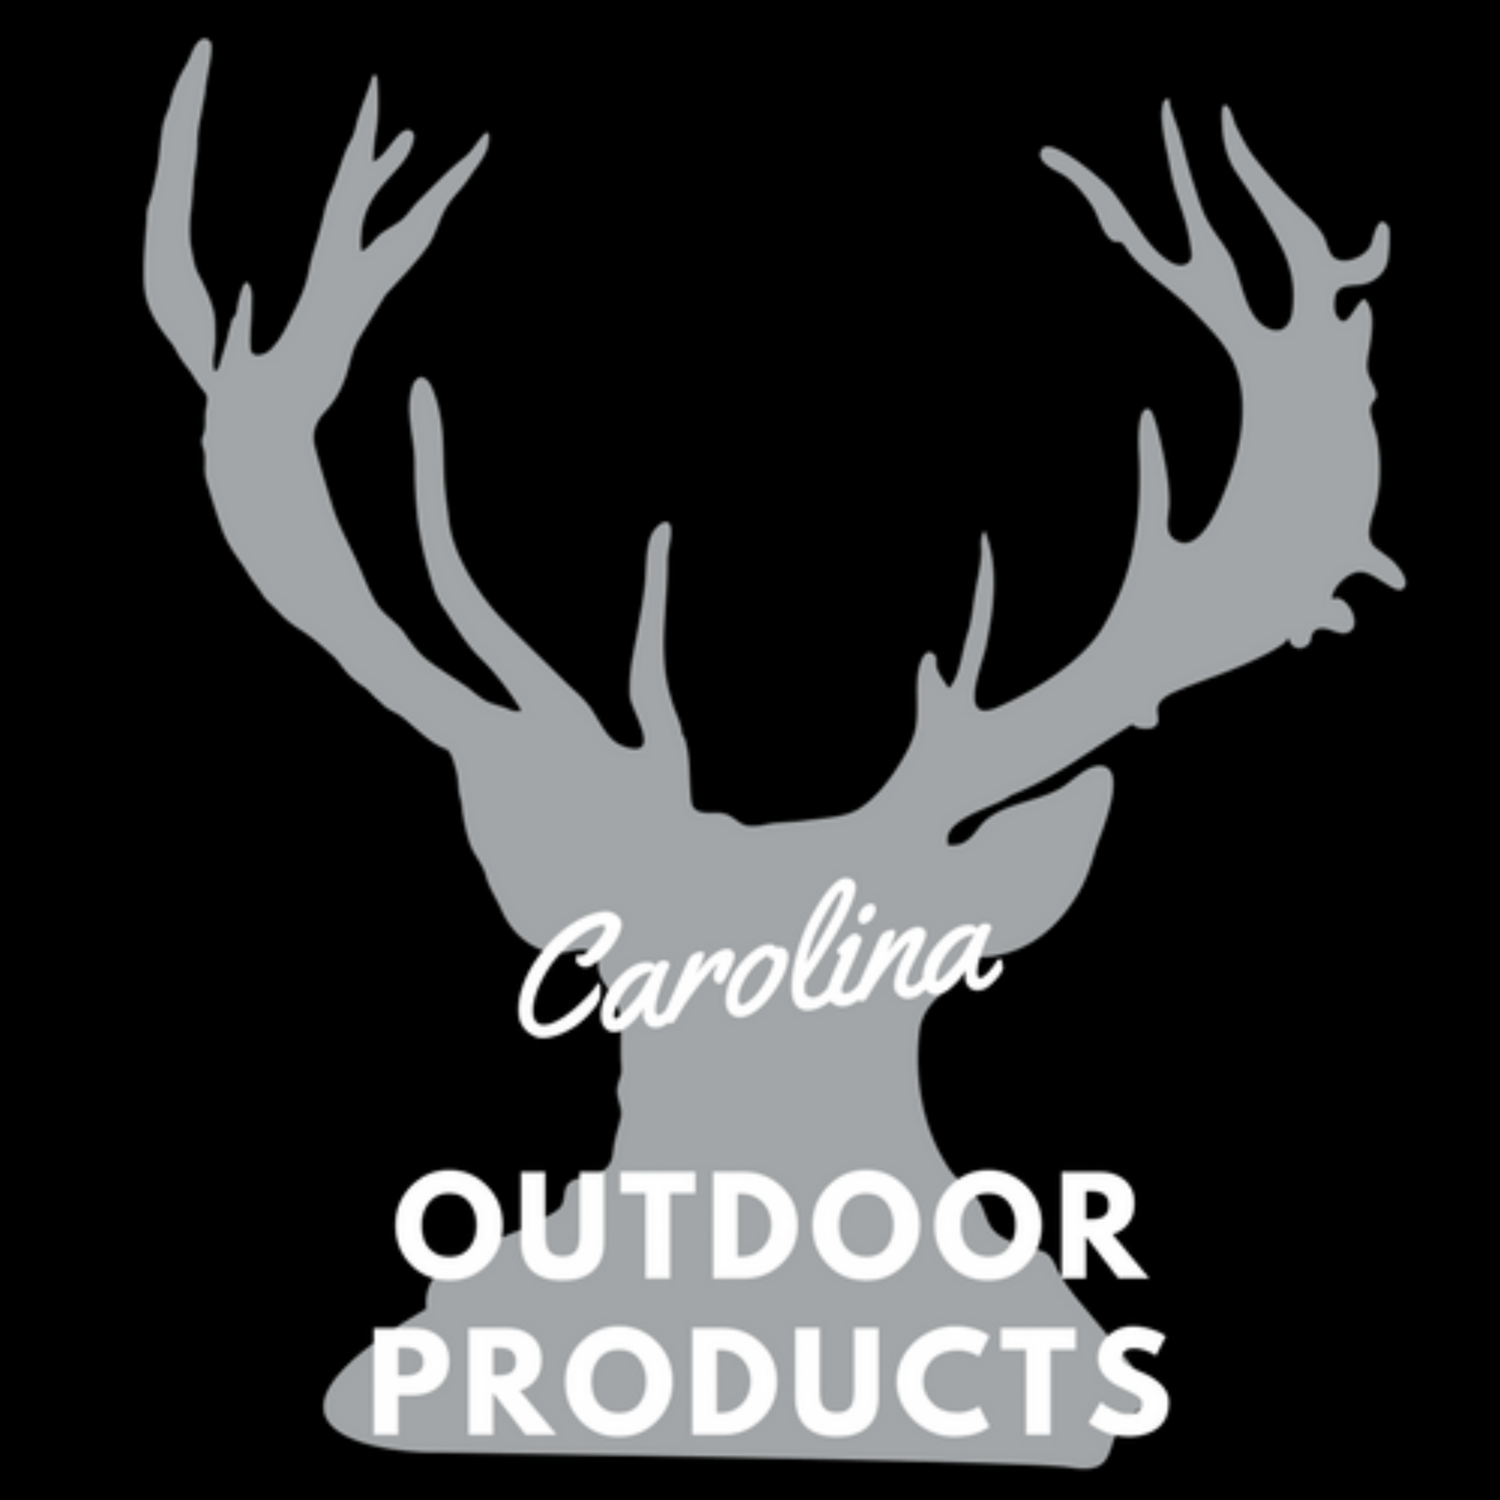 Carolina Outdoor Products